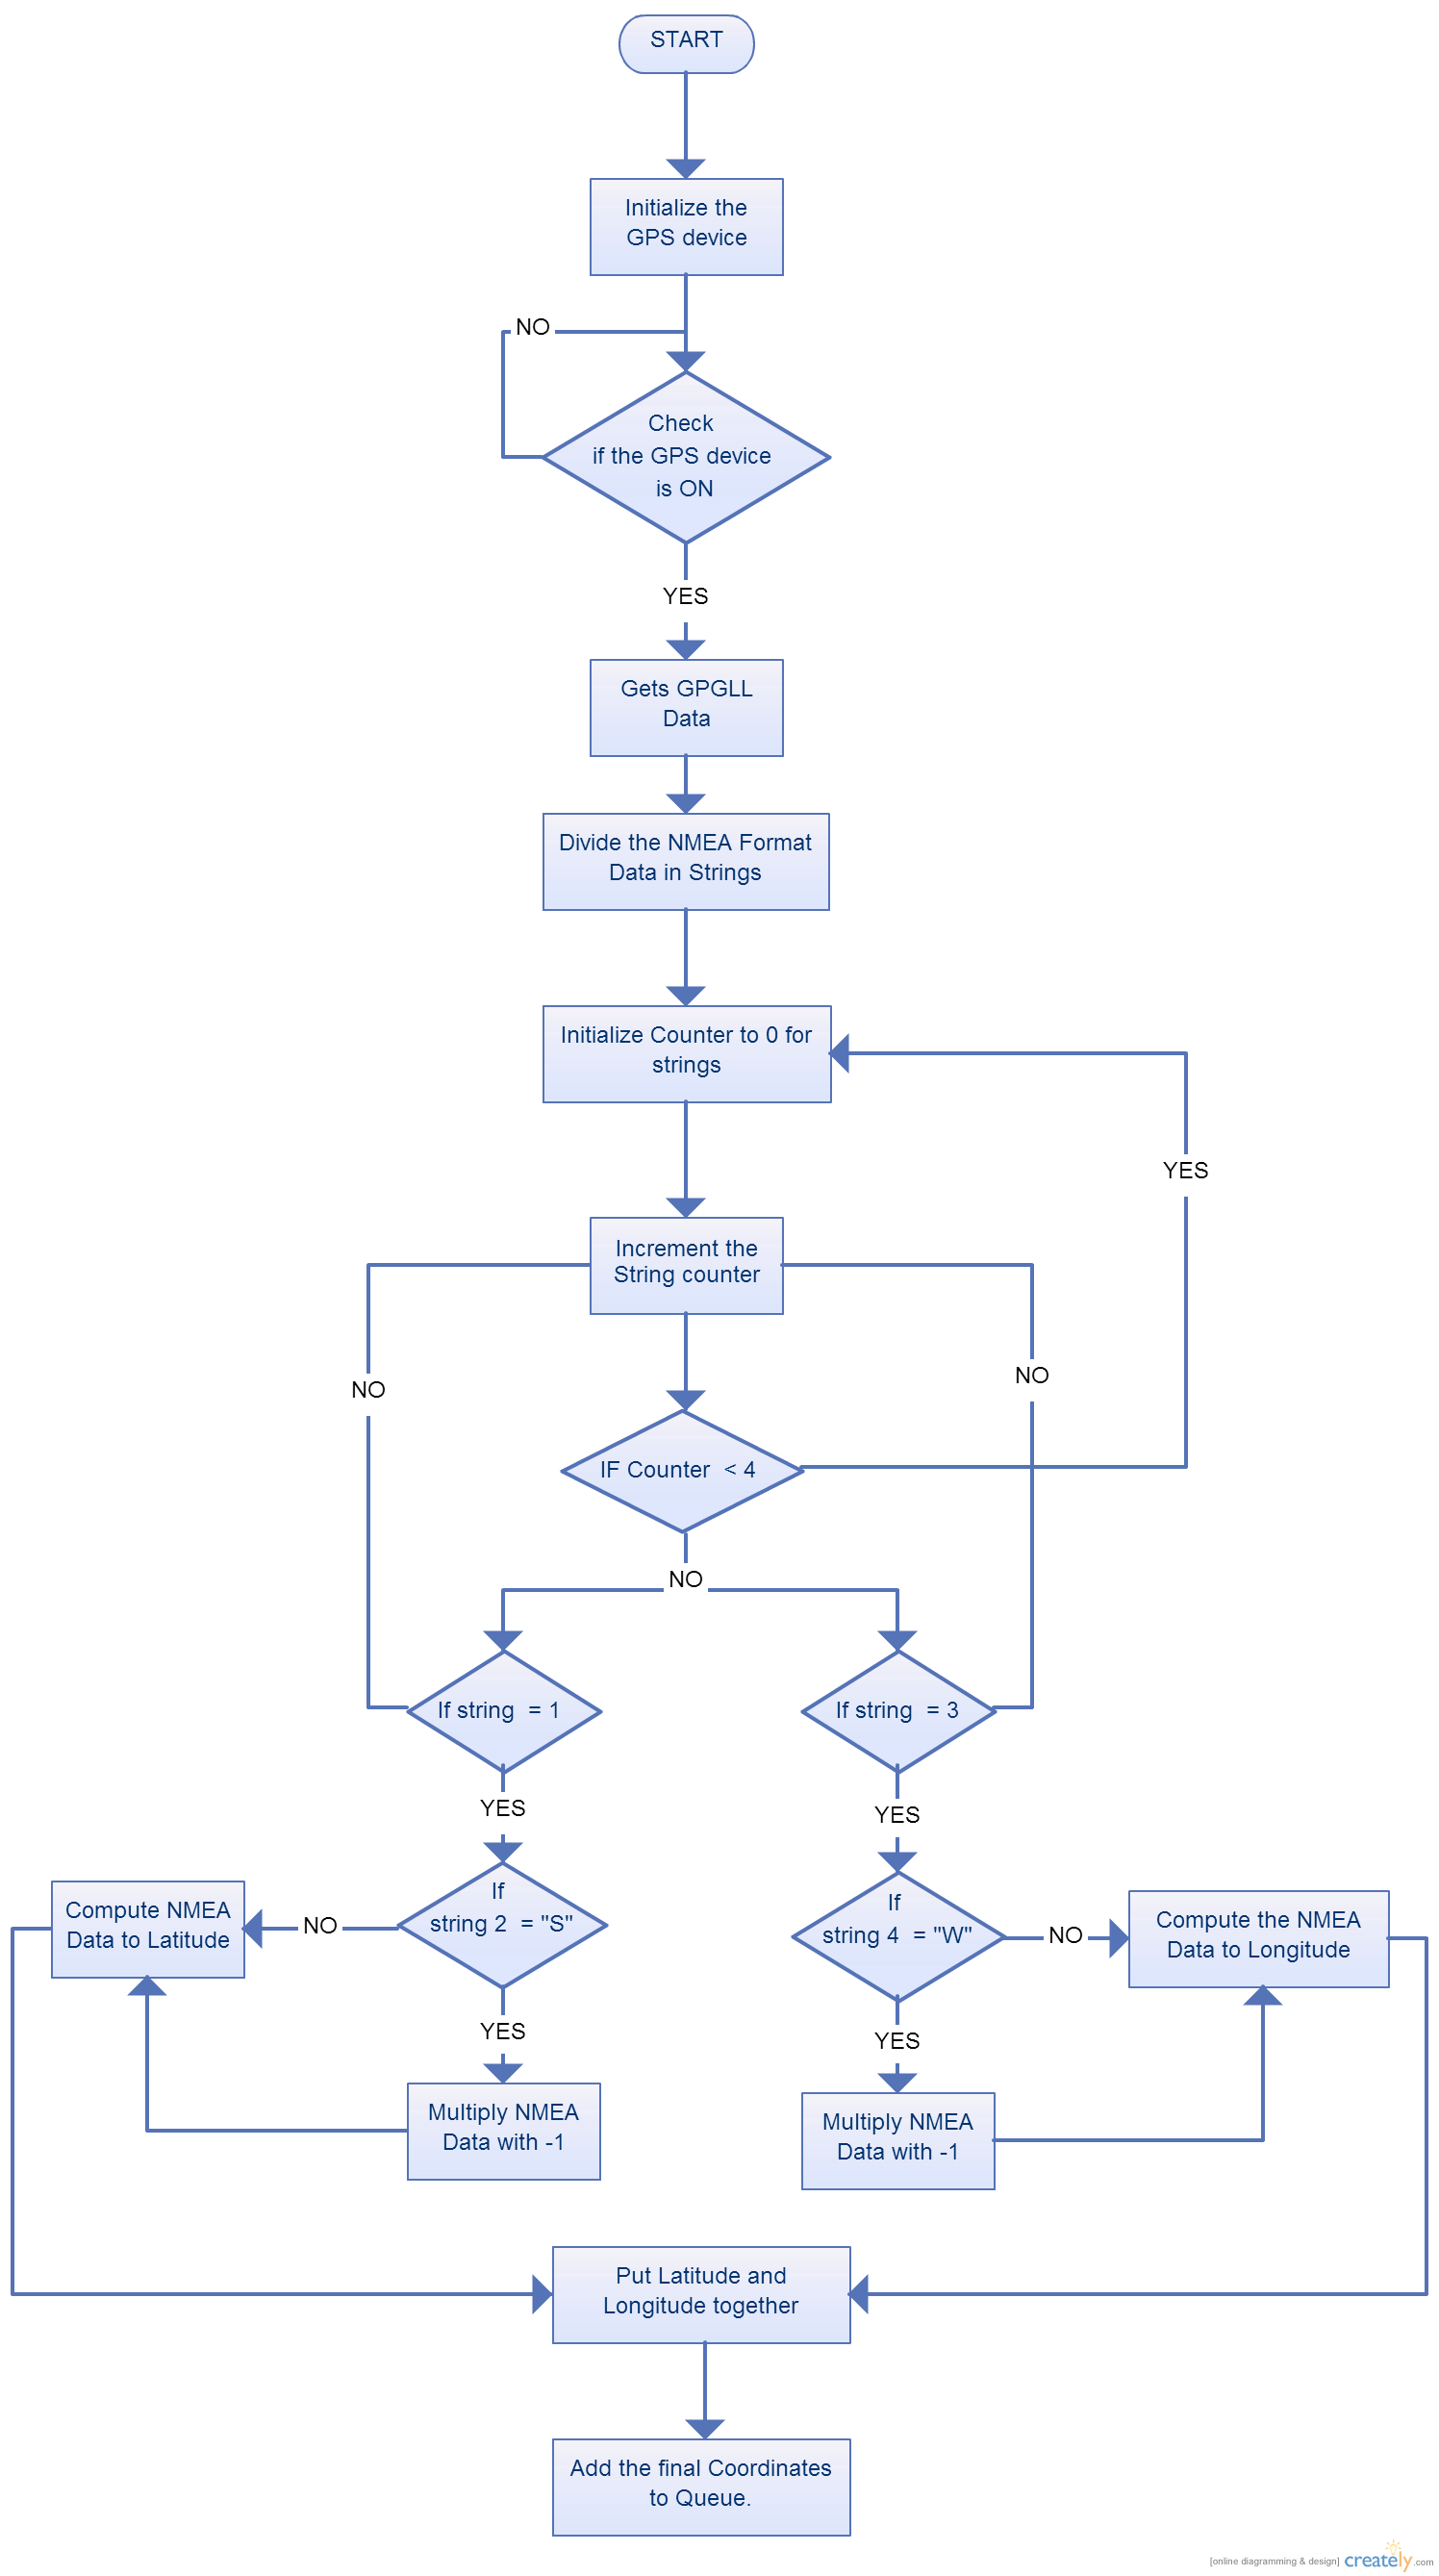 File Cmpe244 S14 T5 Gps Task Flowchart Png Embedded